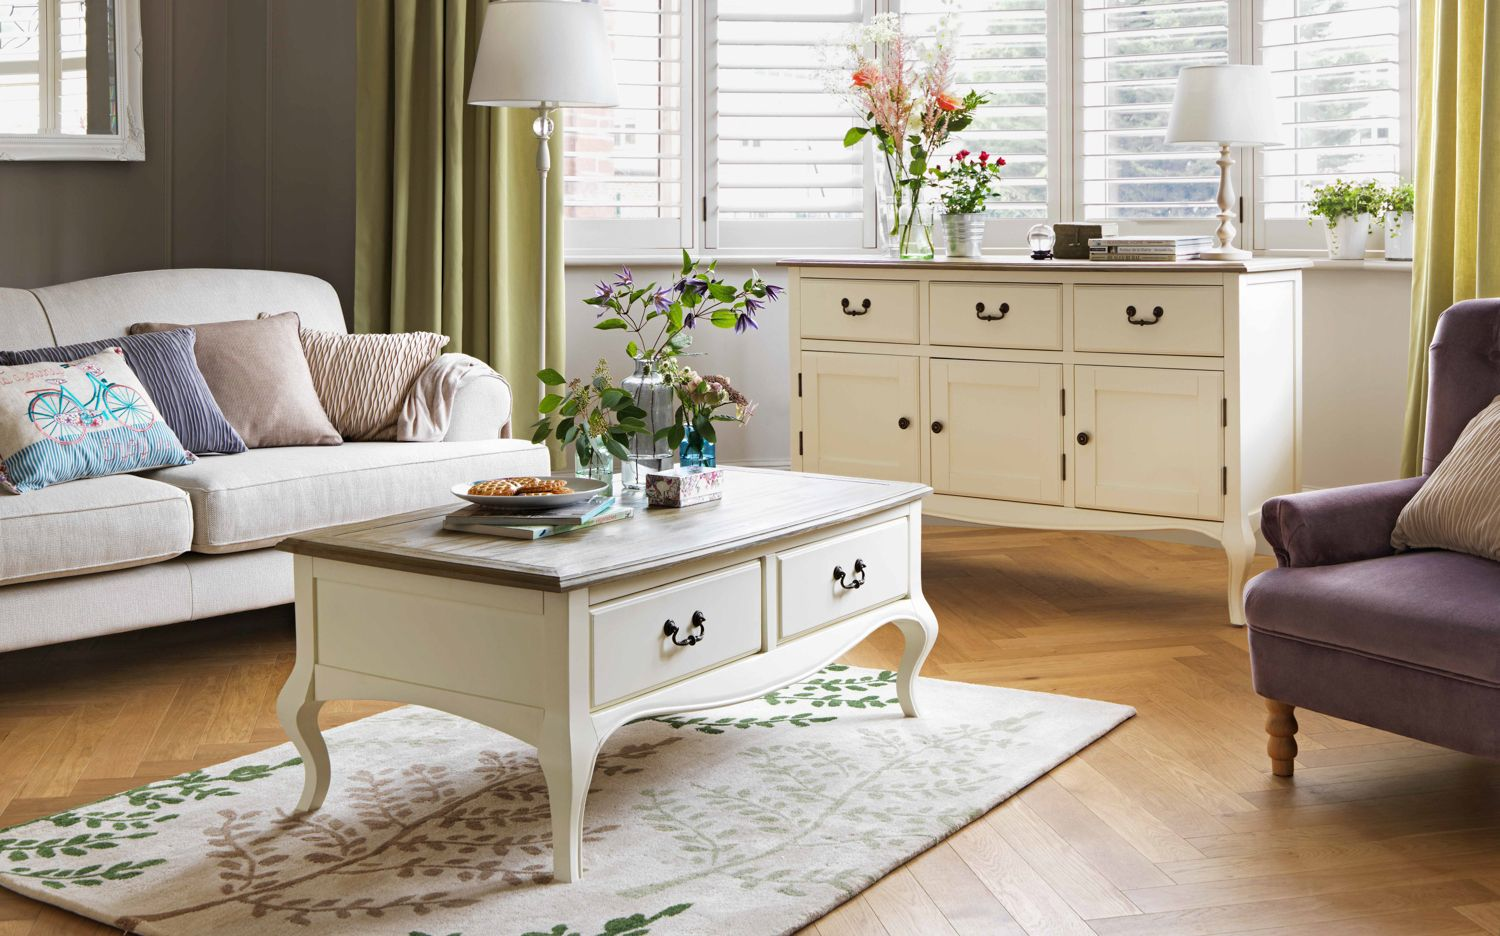 Elegant heart of house harper collection boasts feminine curves and delicate detailing made from solid pine wood and arrives fully assembled for ease